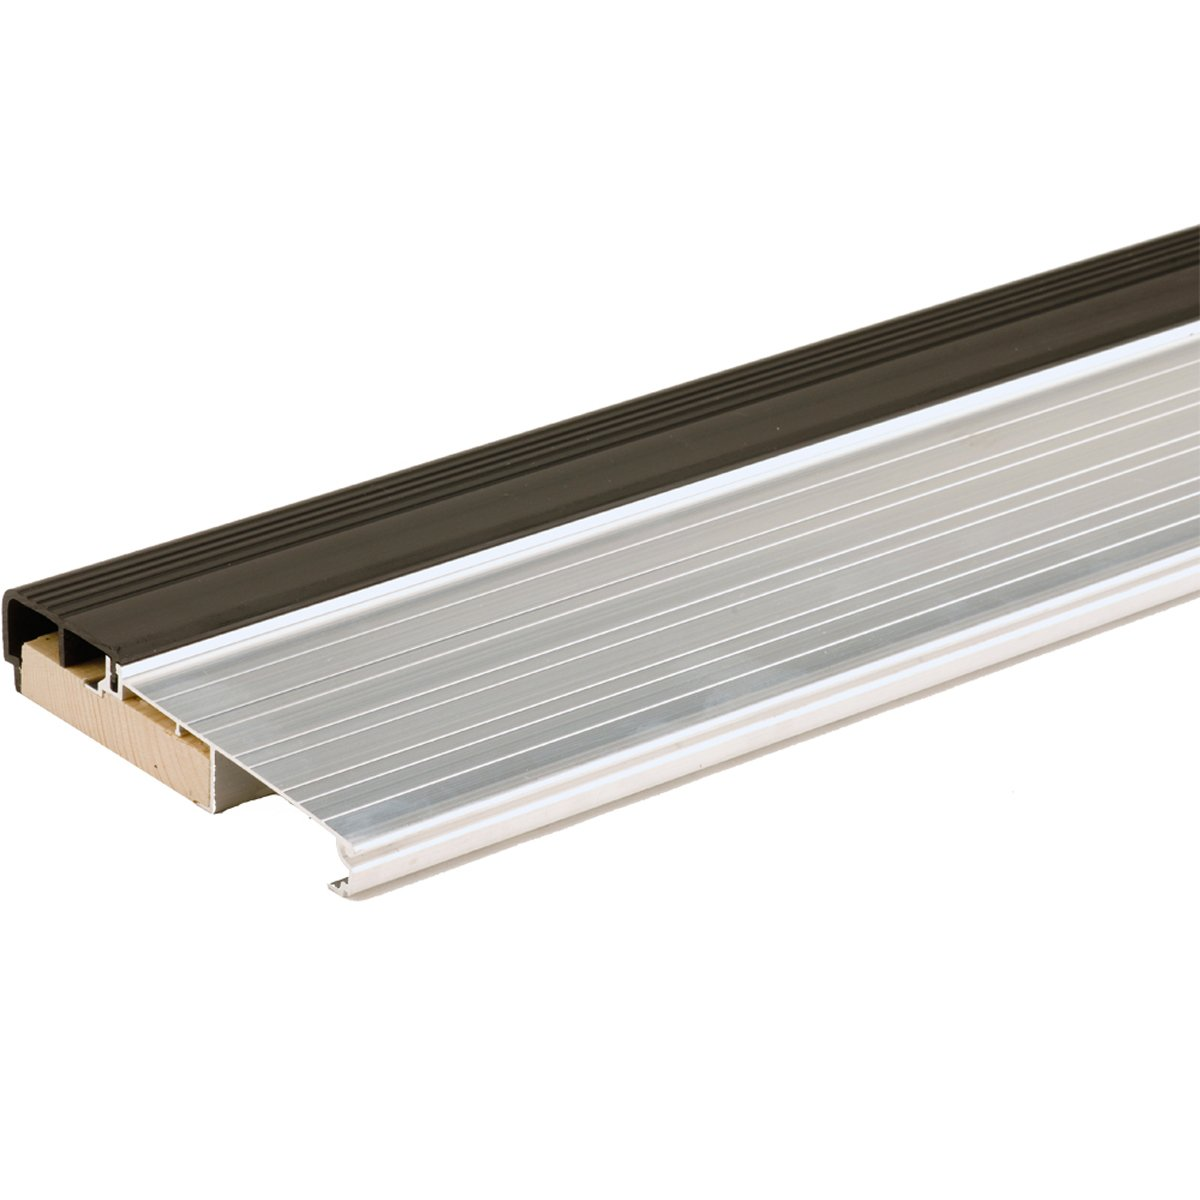 M-D Building Products 78691 1-1/8-Inch by 5-3/4-Inch - 36-Inch TH397 Fixed Vinyl Sill Inswing, Aluminum Mill